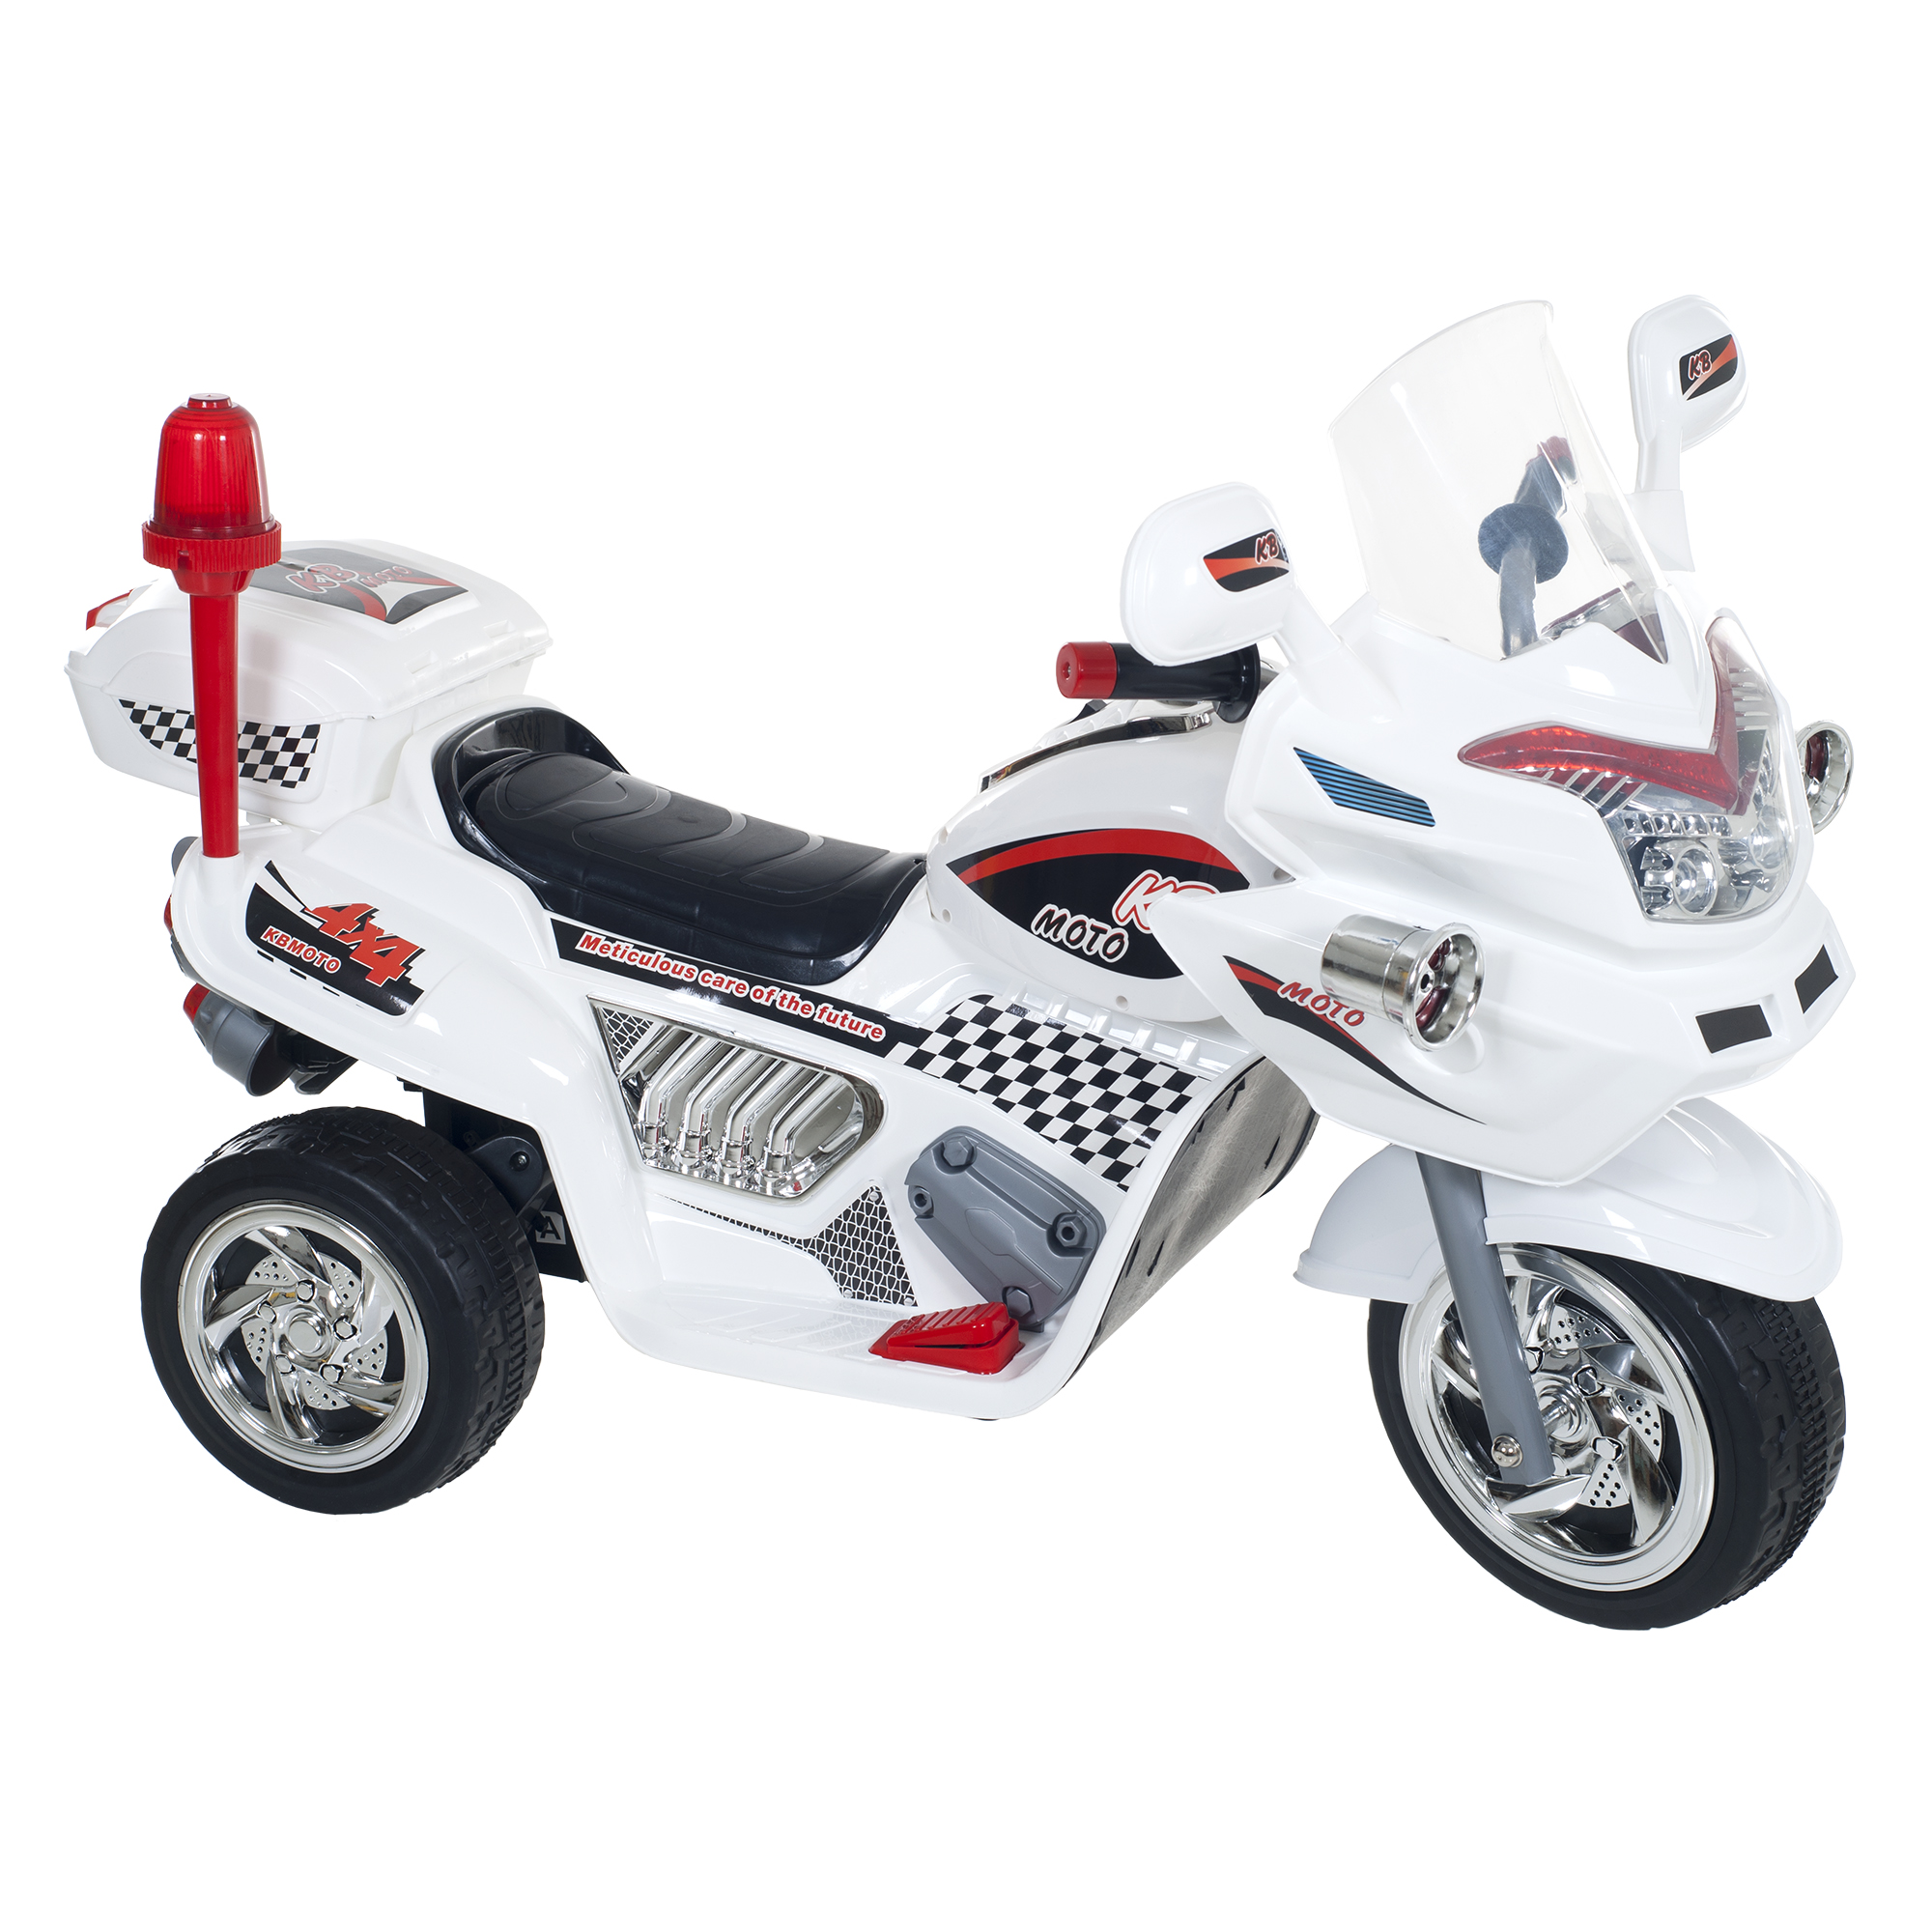 Ride on Toy, 3 Wheel Motorcycle Trike for Kids, Battery Powered Ride On Toy by Hey! Play! – Ride on Toys for Boys and Girls, 2 - 6 Year Old - White